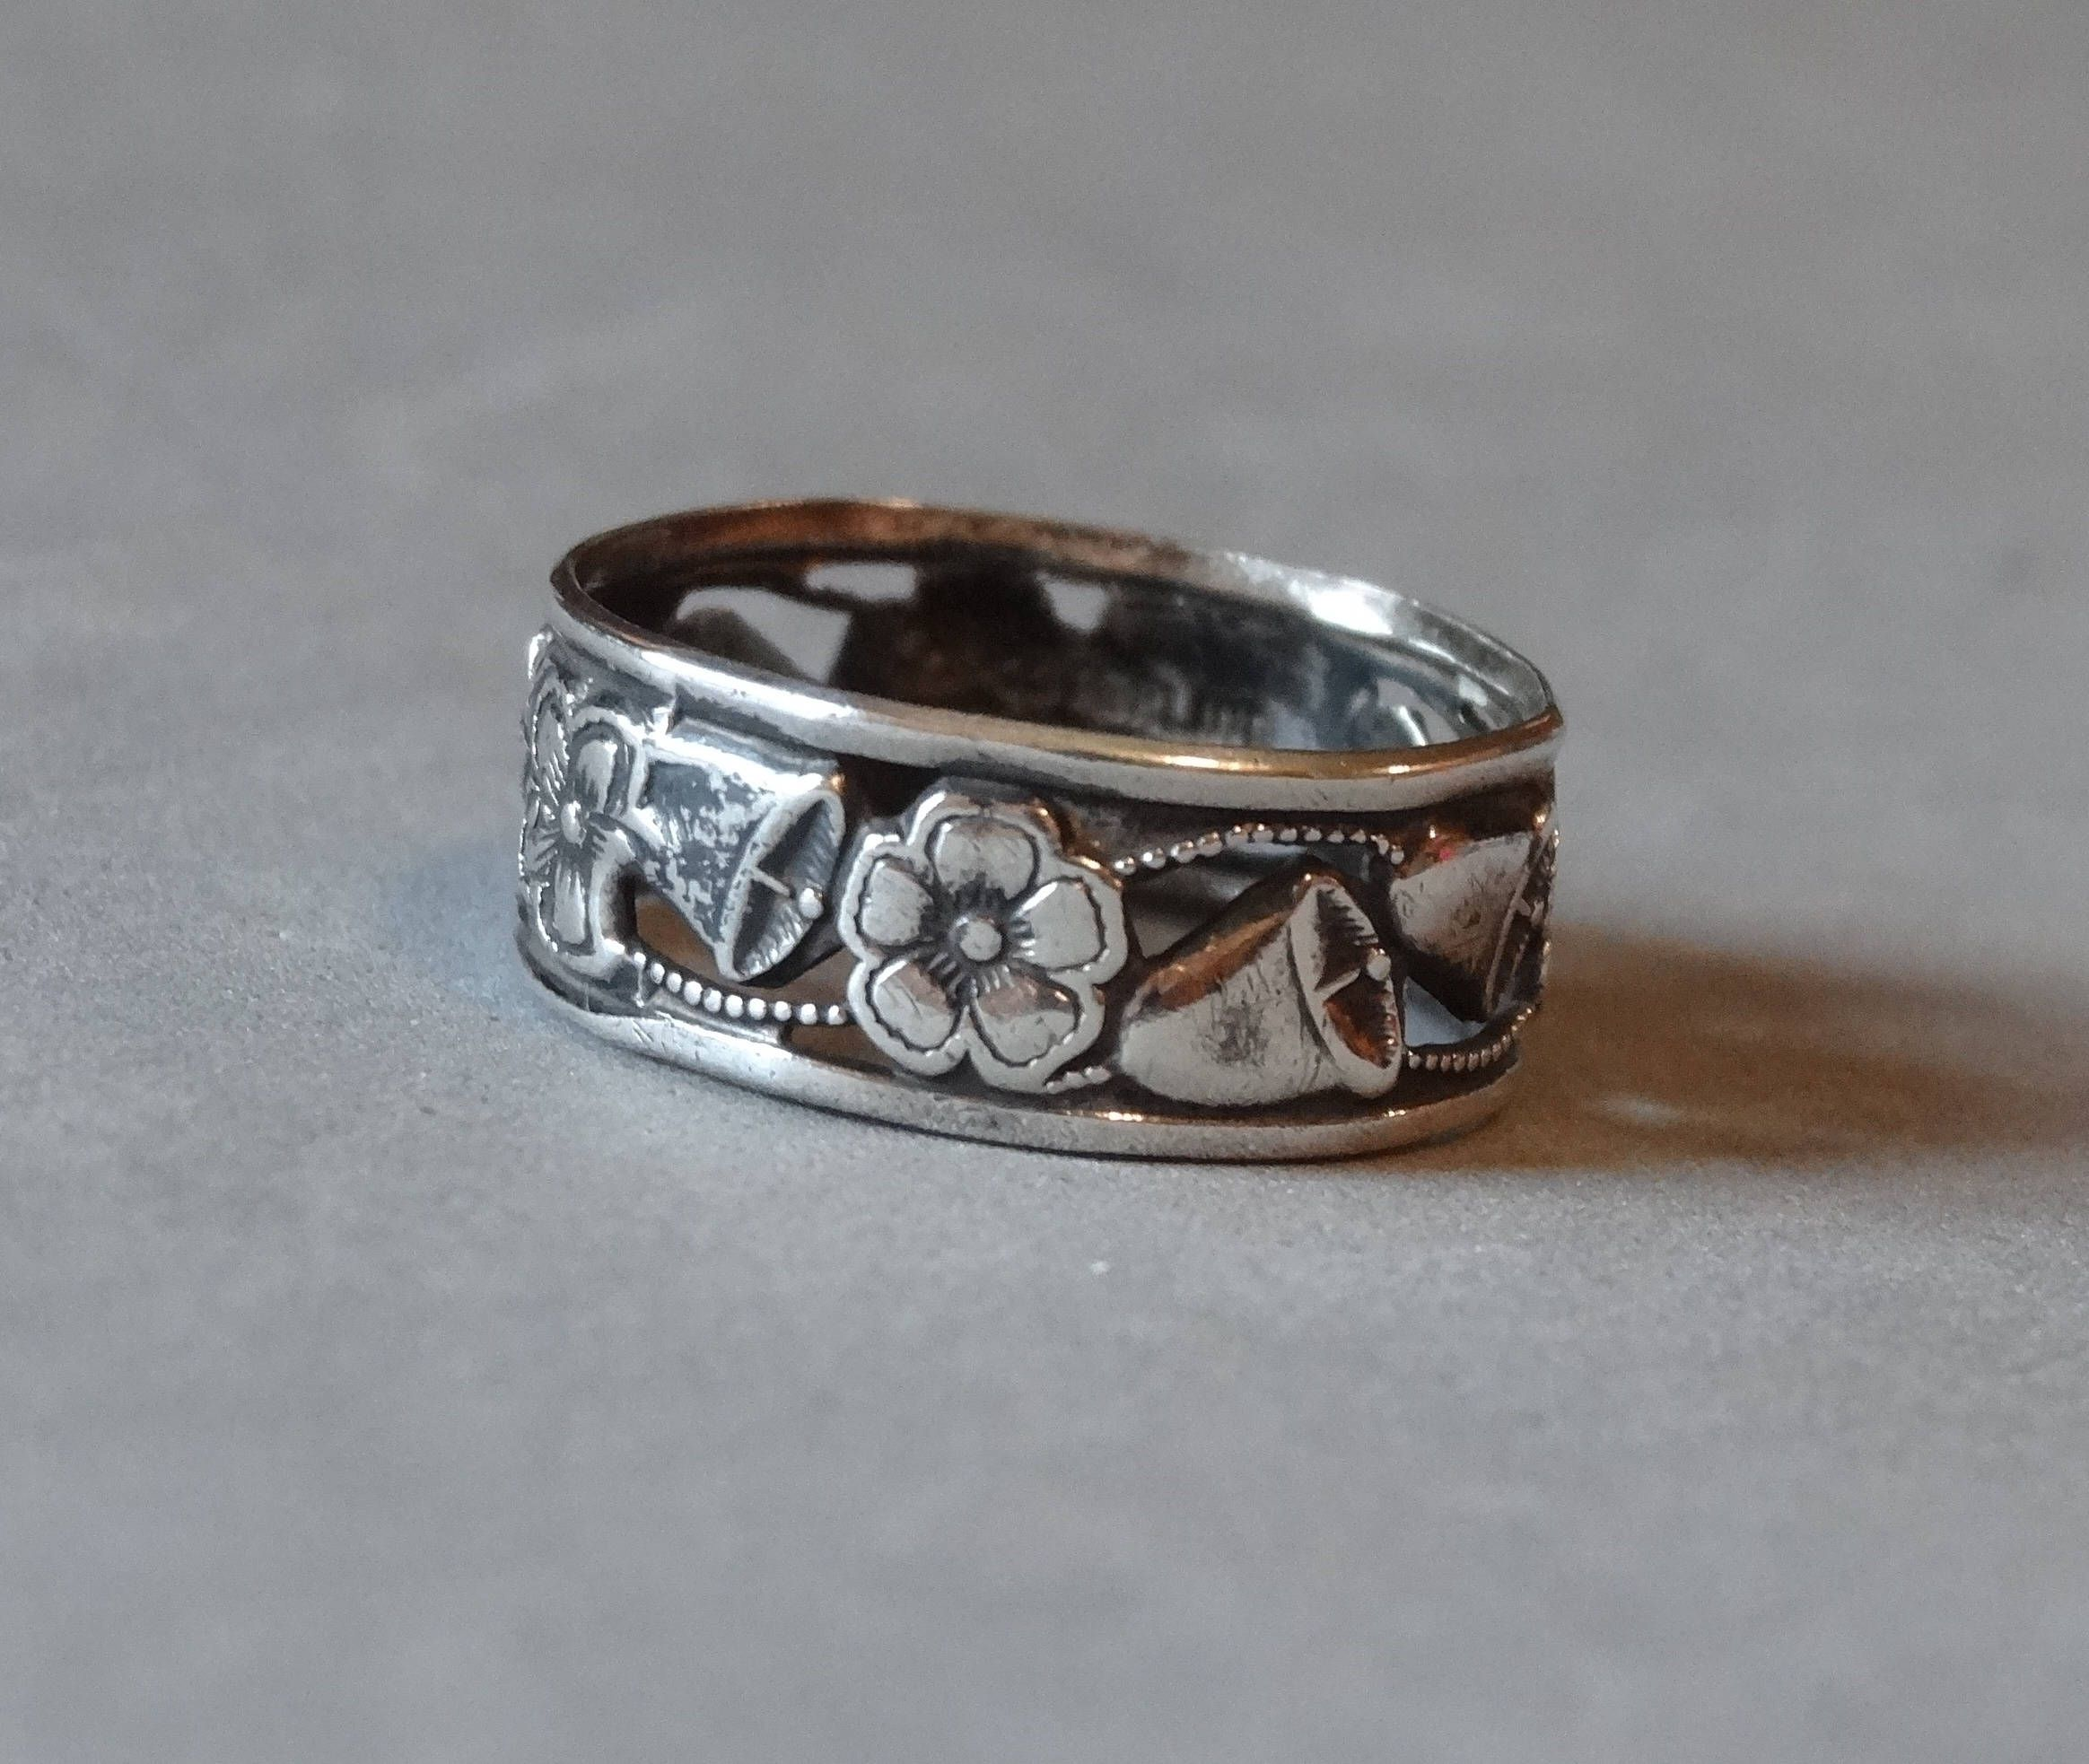 Antique Wedding Ring Band Sterling Silver Art Nouveau Forget Me Not Flowers Bells Hand Cut Jewelry Size 675 Marked: Silver Bells Wedding Ring At Websimilar.org